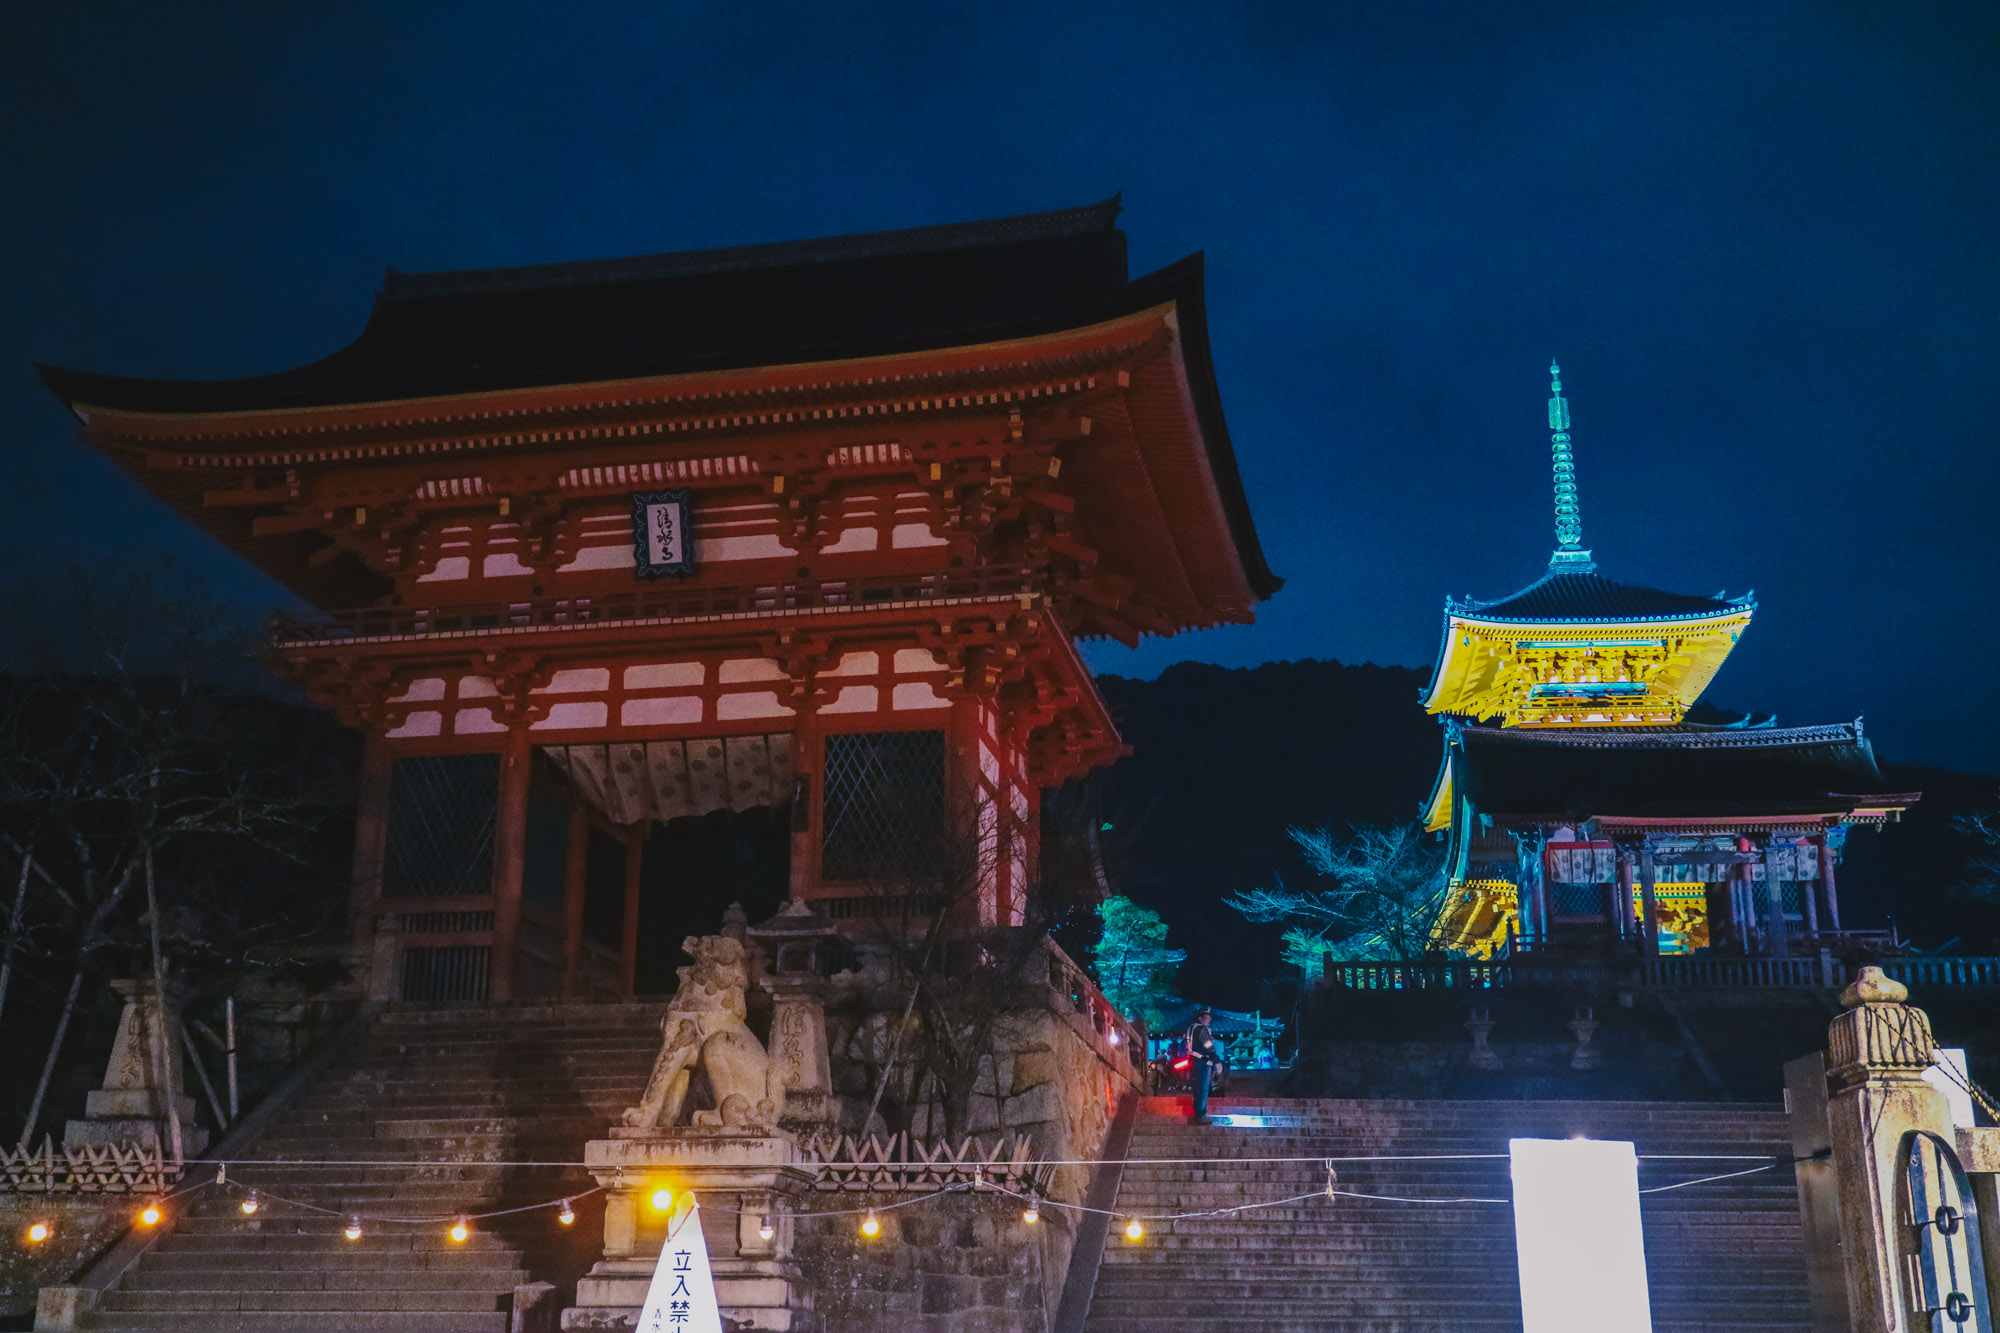 Kiyomizu-dera-清水寺-kyoto-japan-darrenbloggie